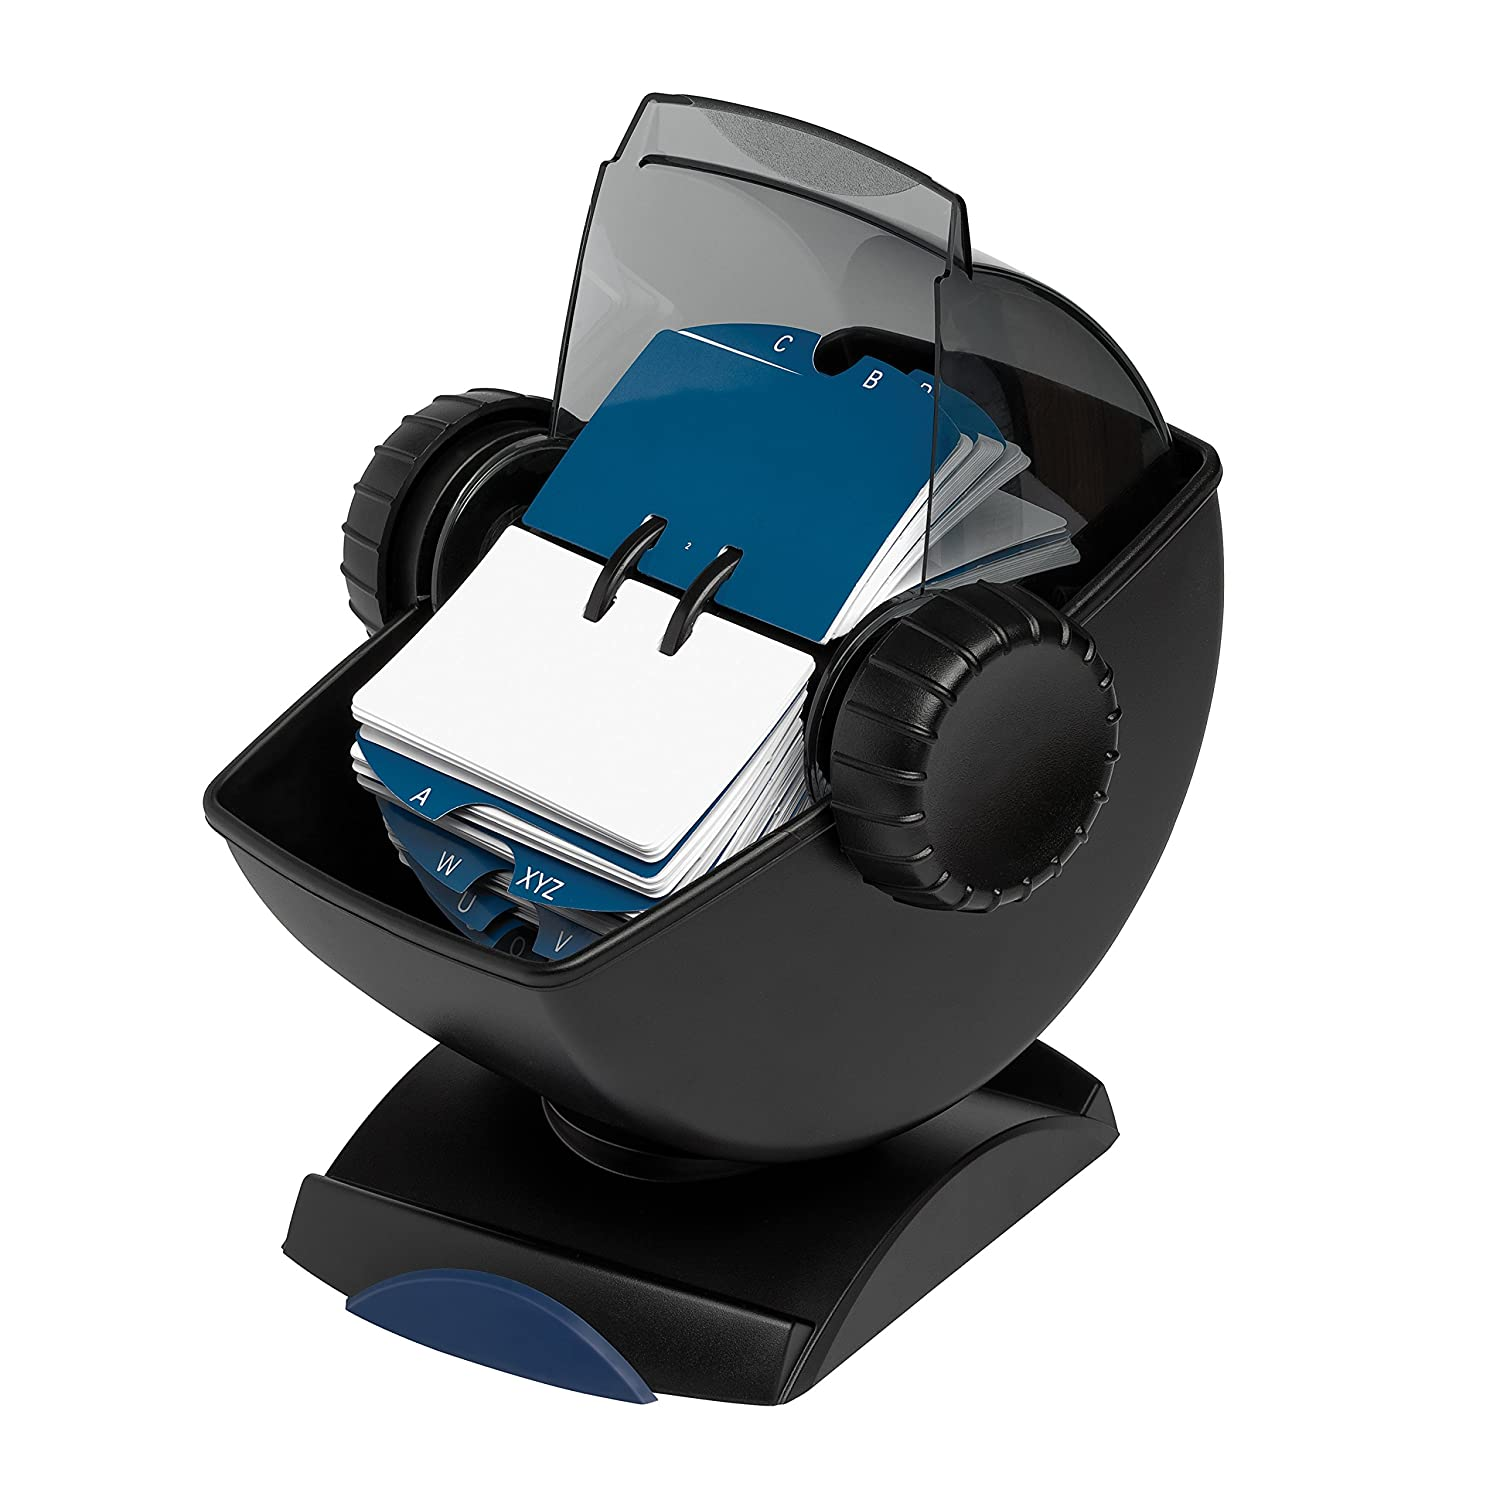 rolodex rotary business card file with swivel base